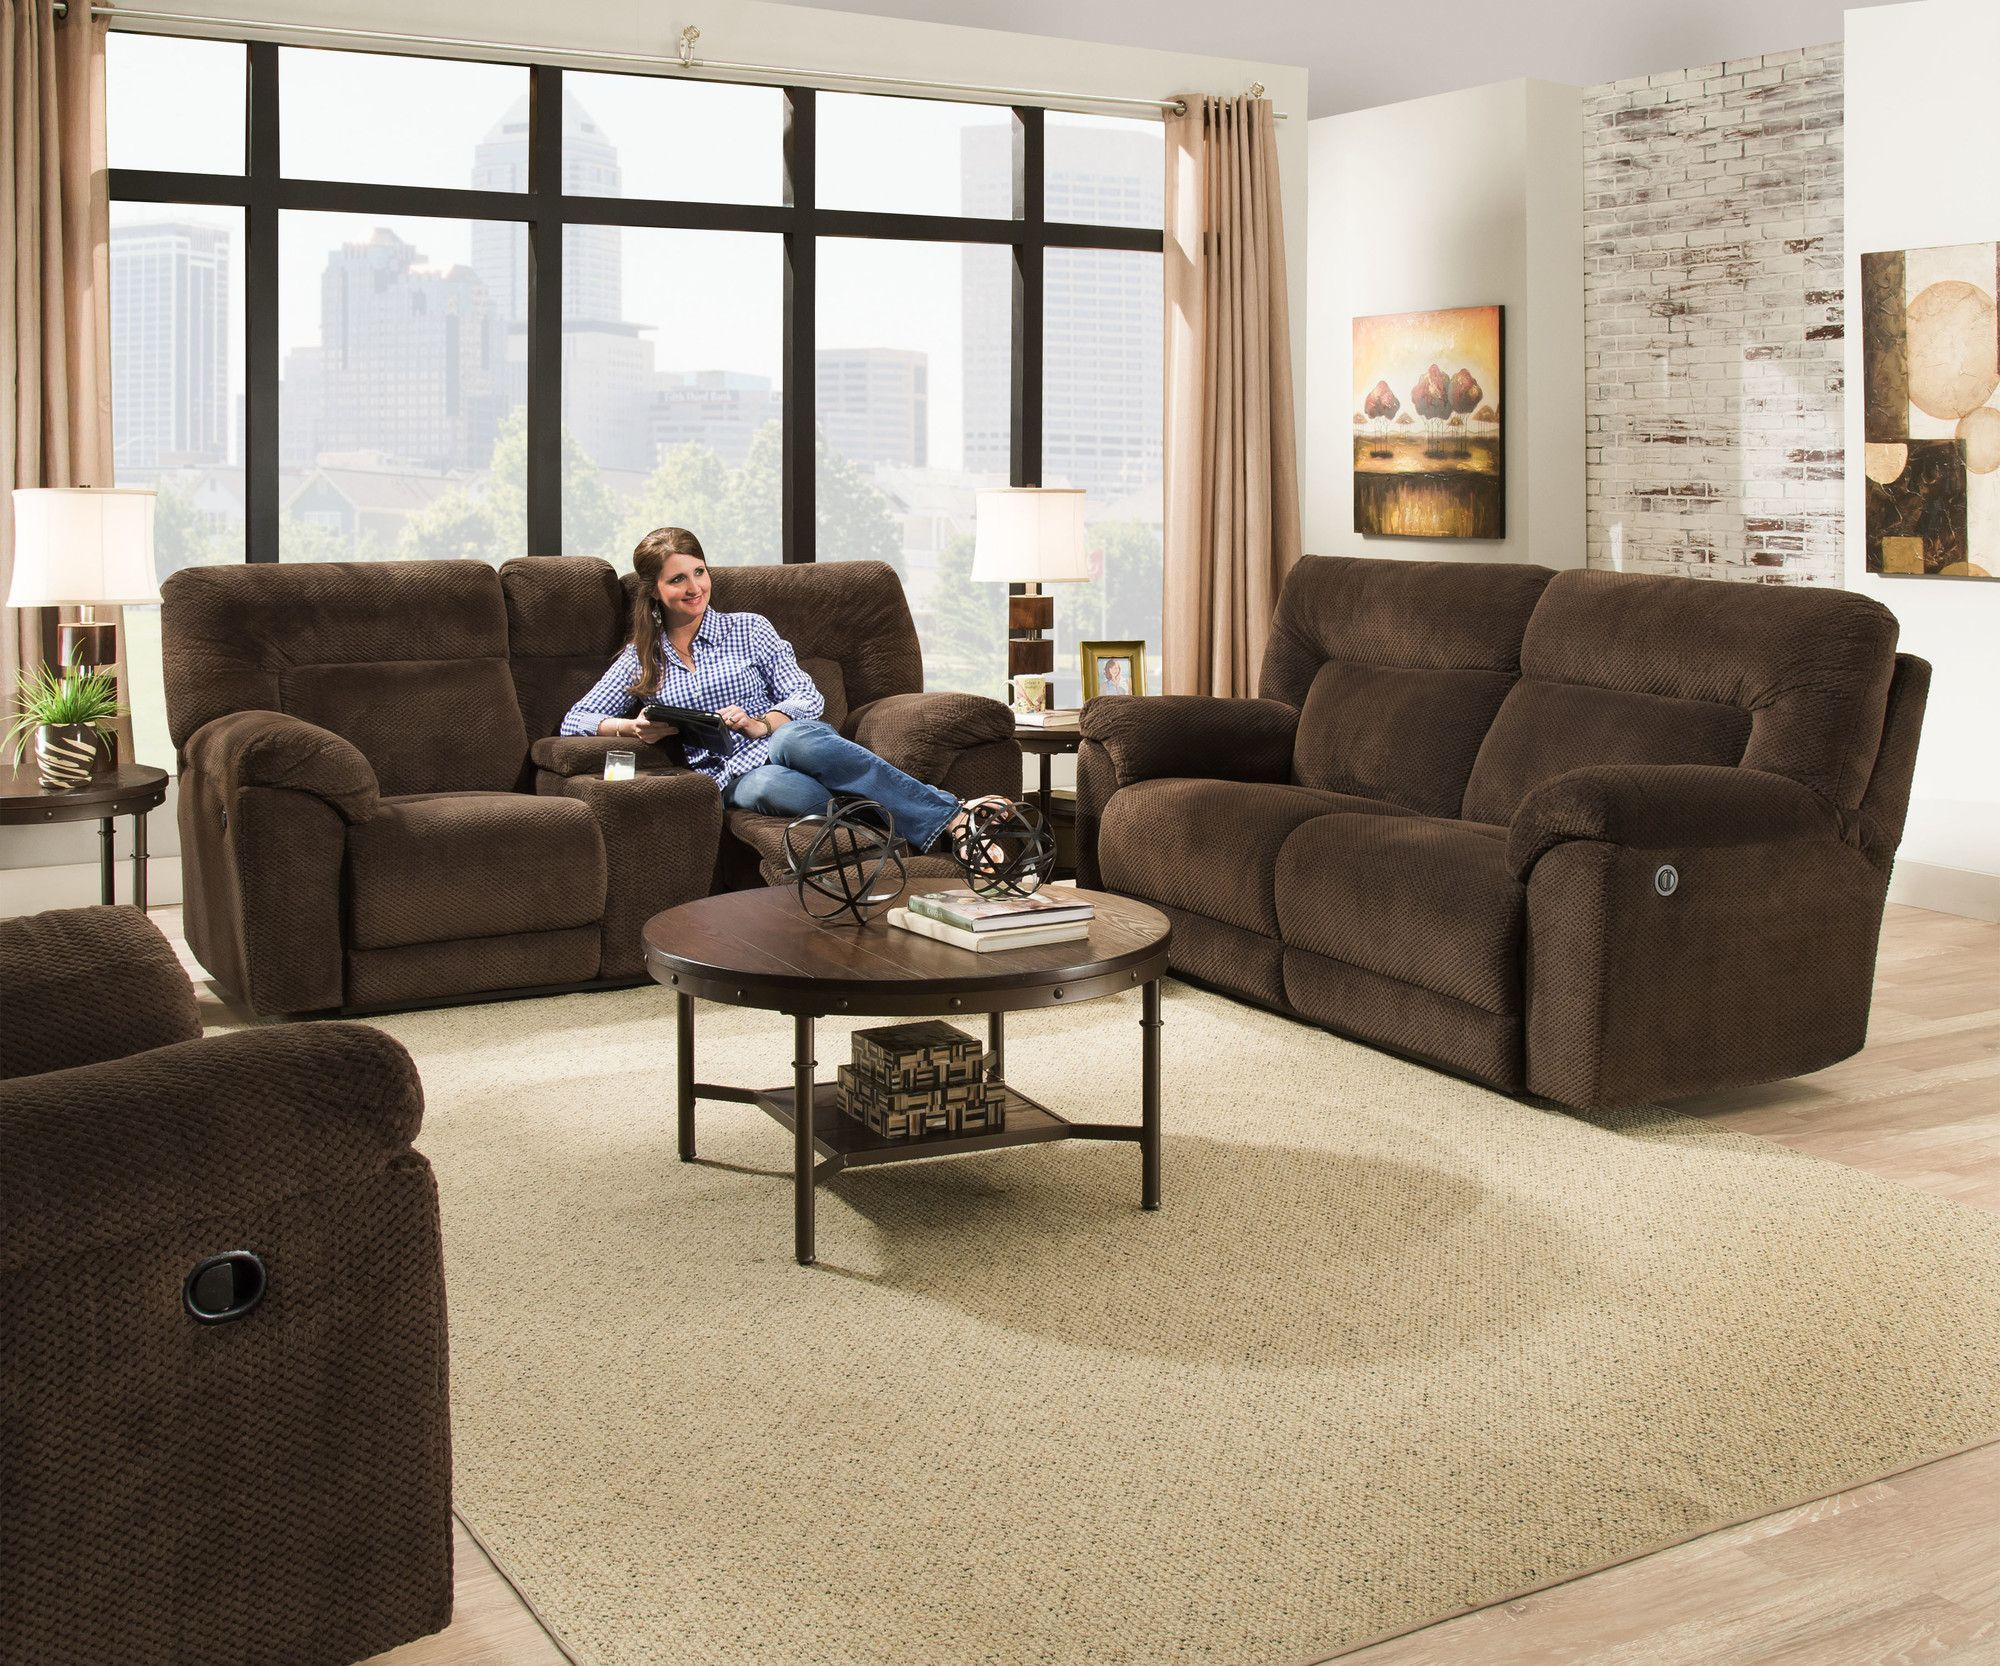 Best Madeline Swivel Glider Recliner Cheap Living Room Sets 400 x 300